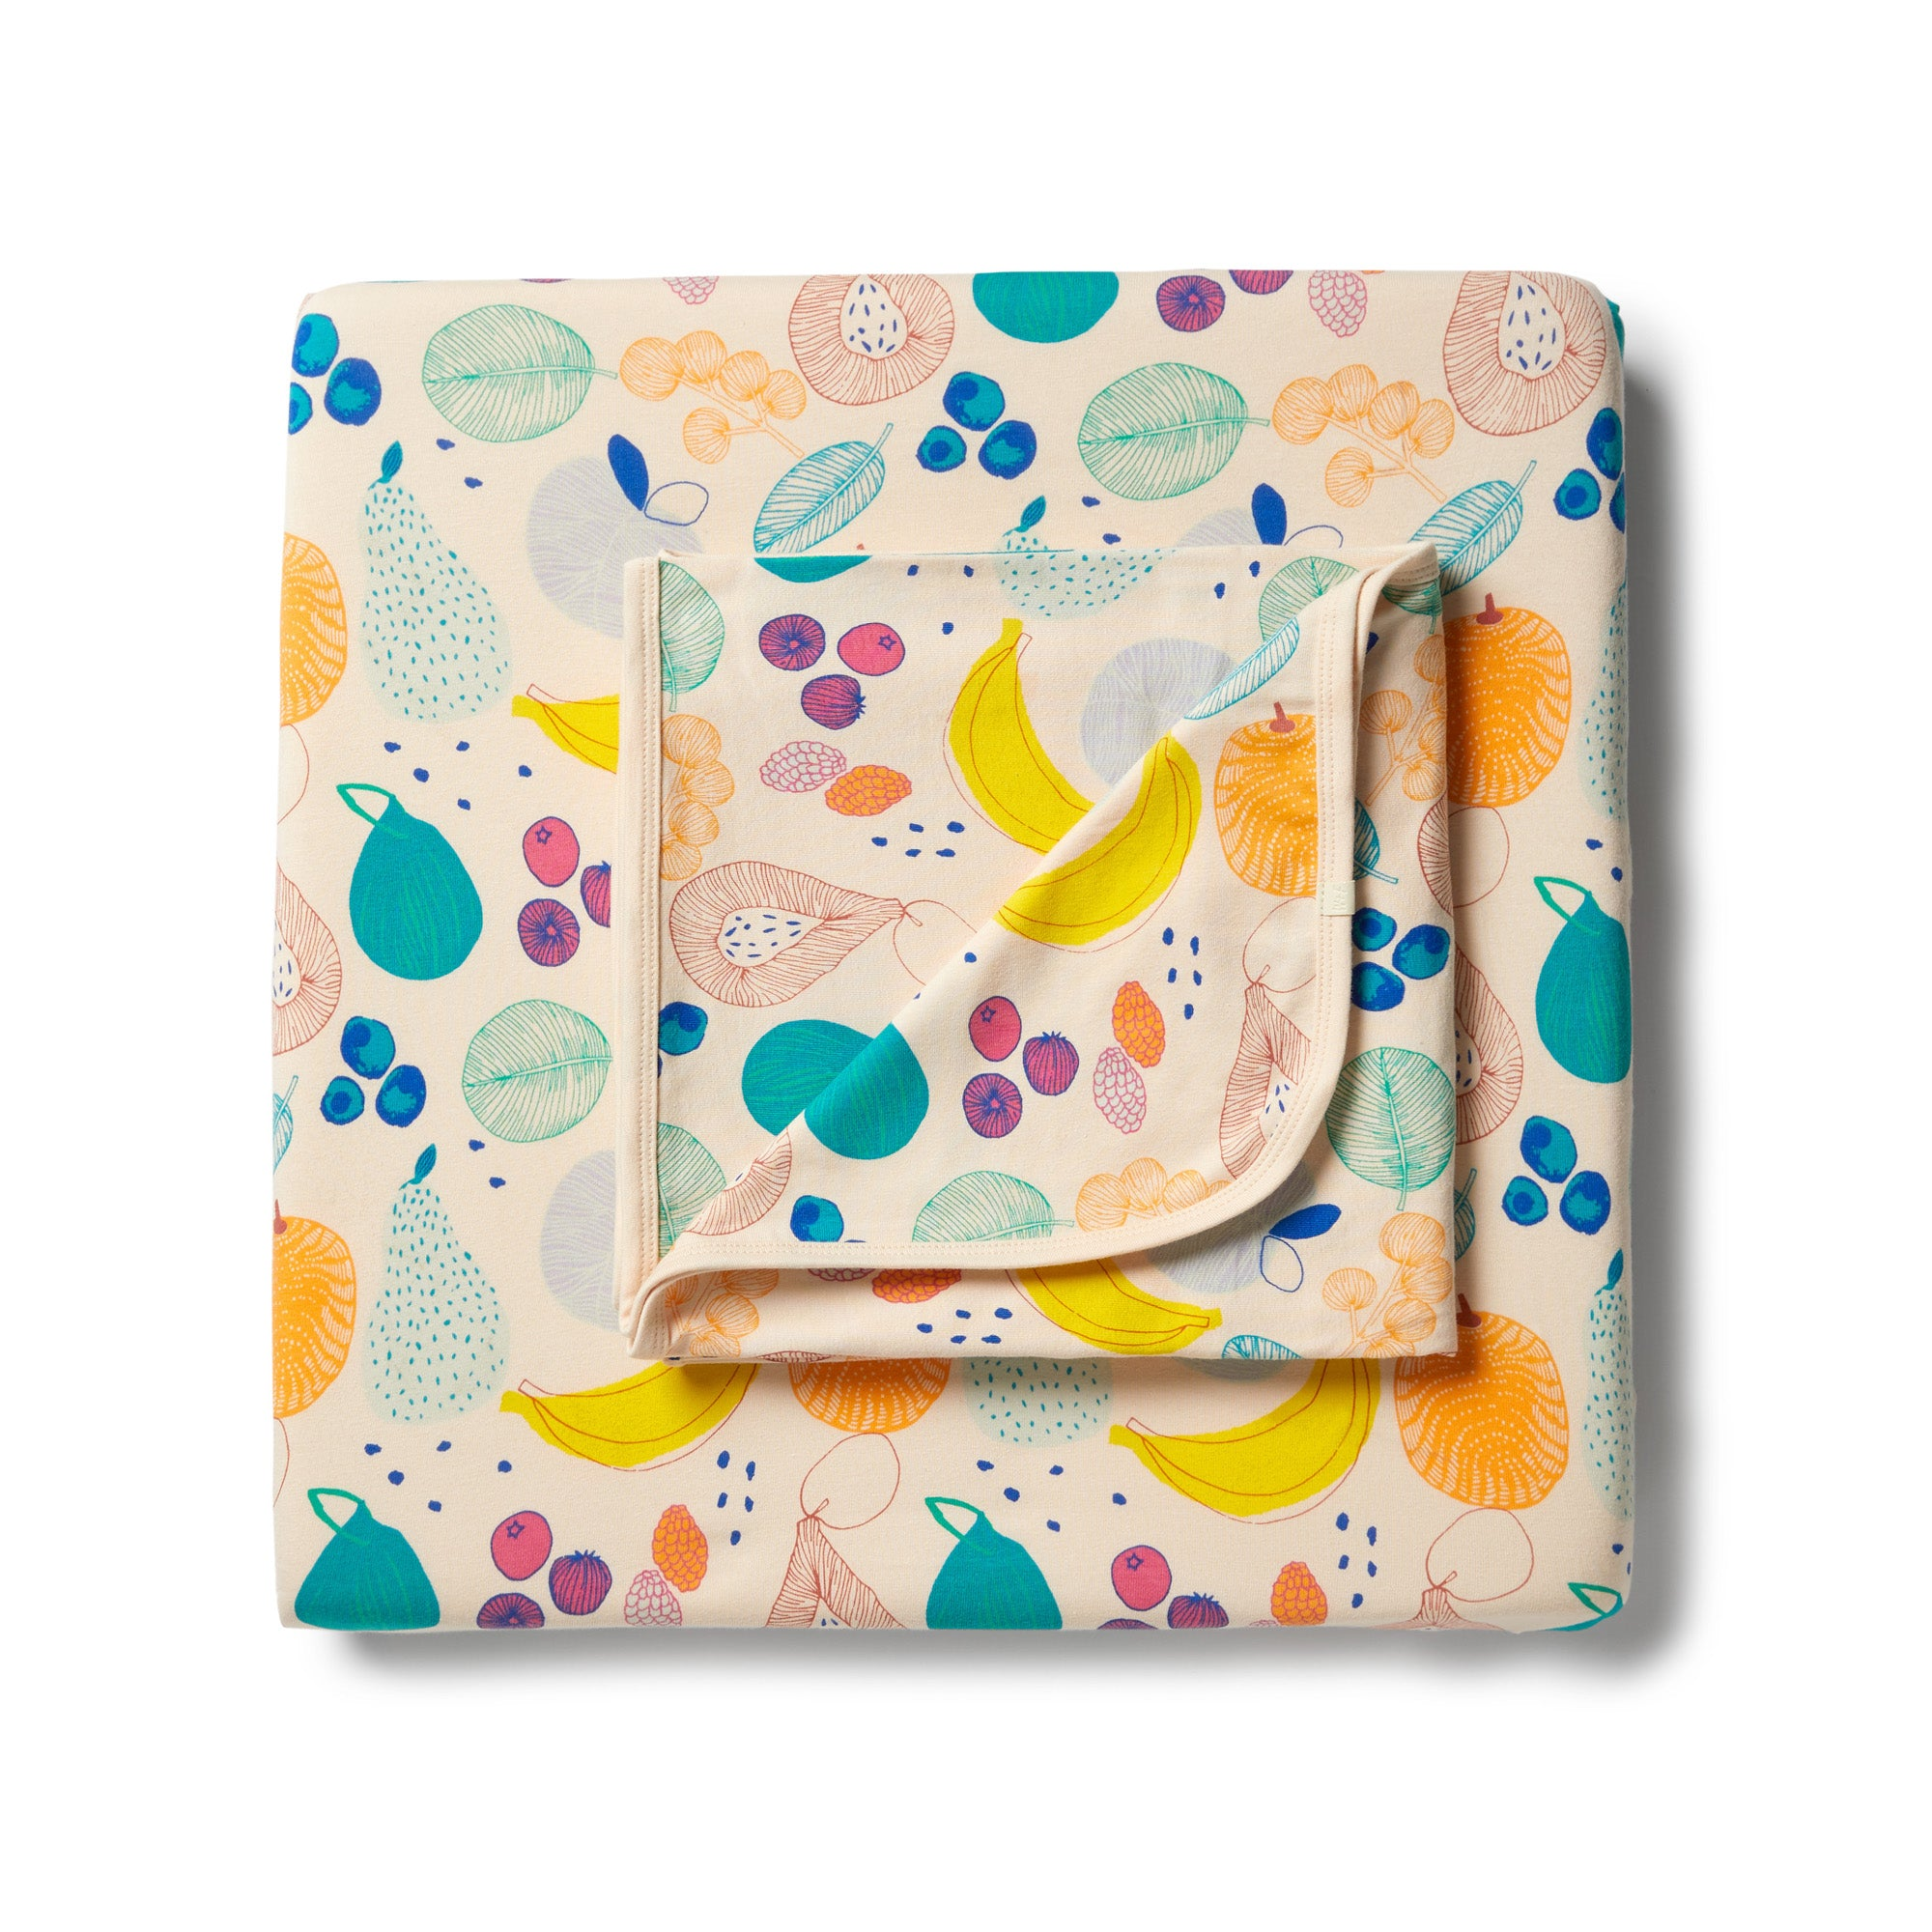 Wilson & Frenchy - Organic Cot Sheet Set - Fruit Loop